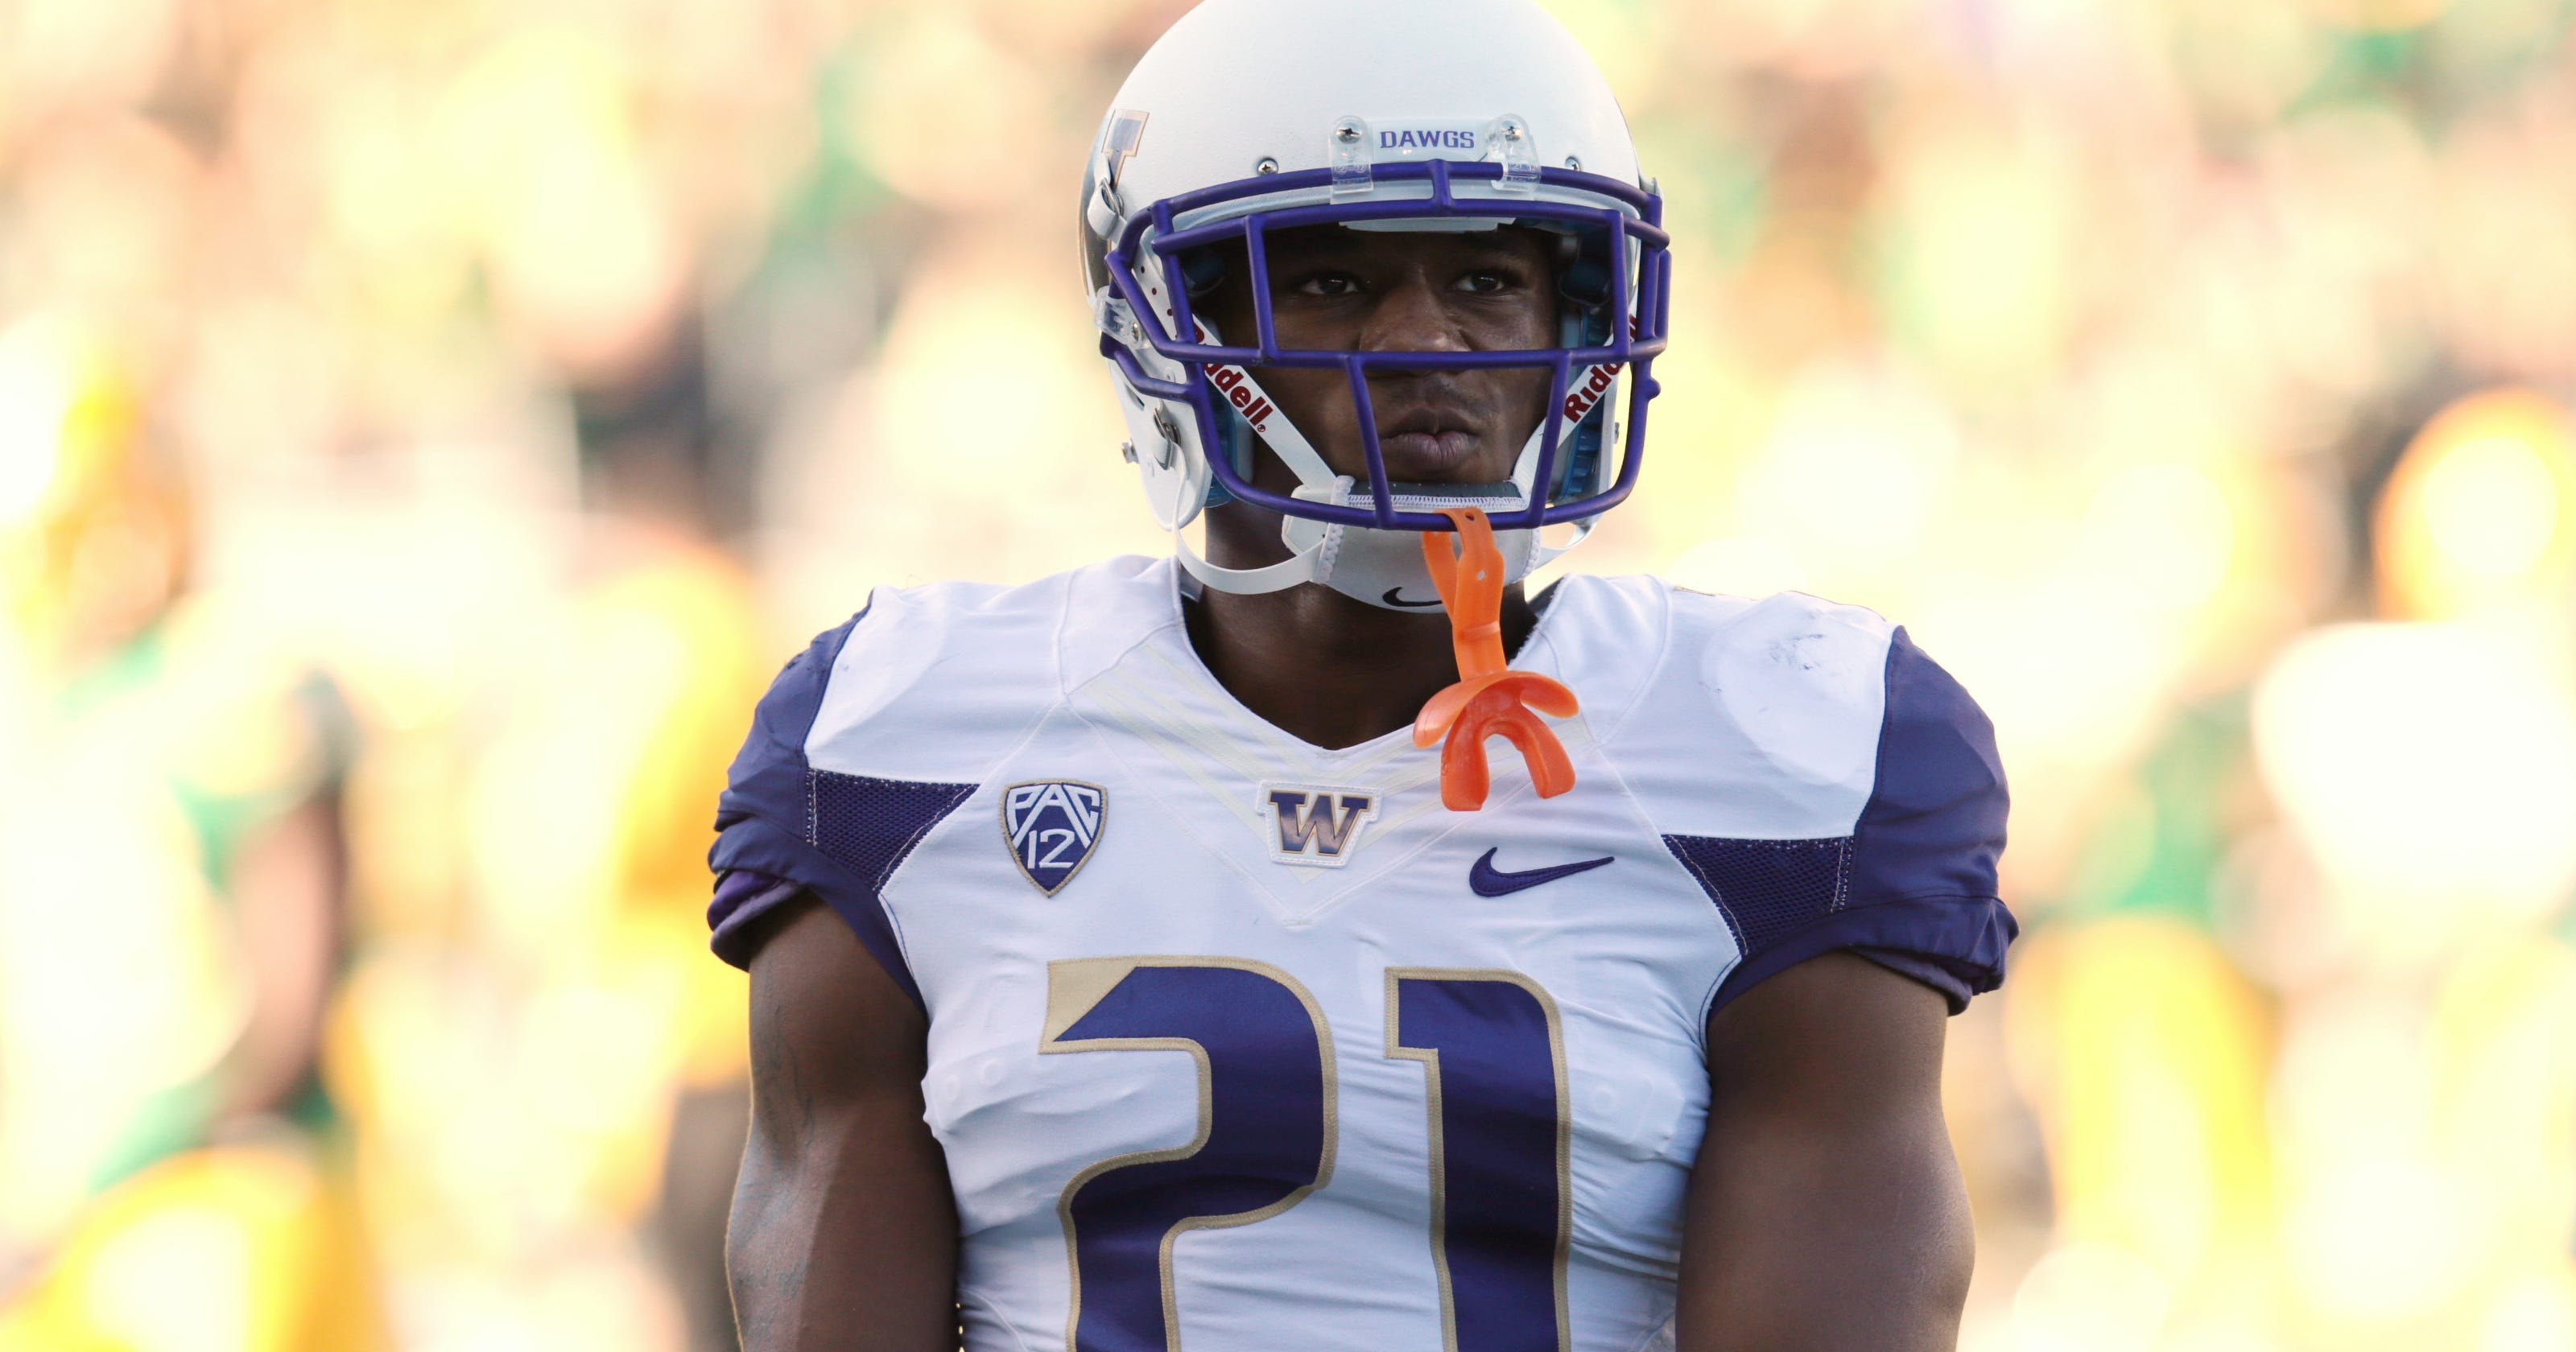 e325f0bfc From dismissal to fresh start for former Washington corner Marcus Peters